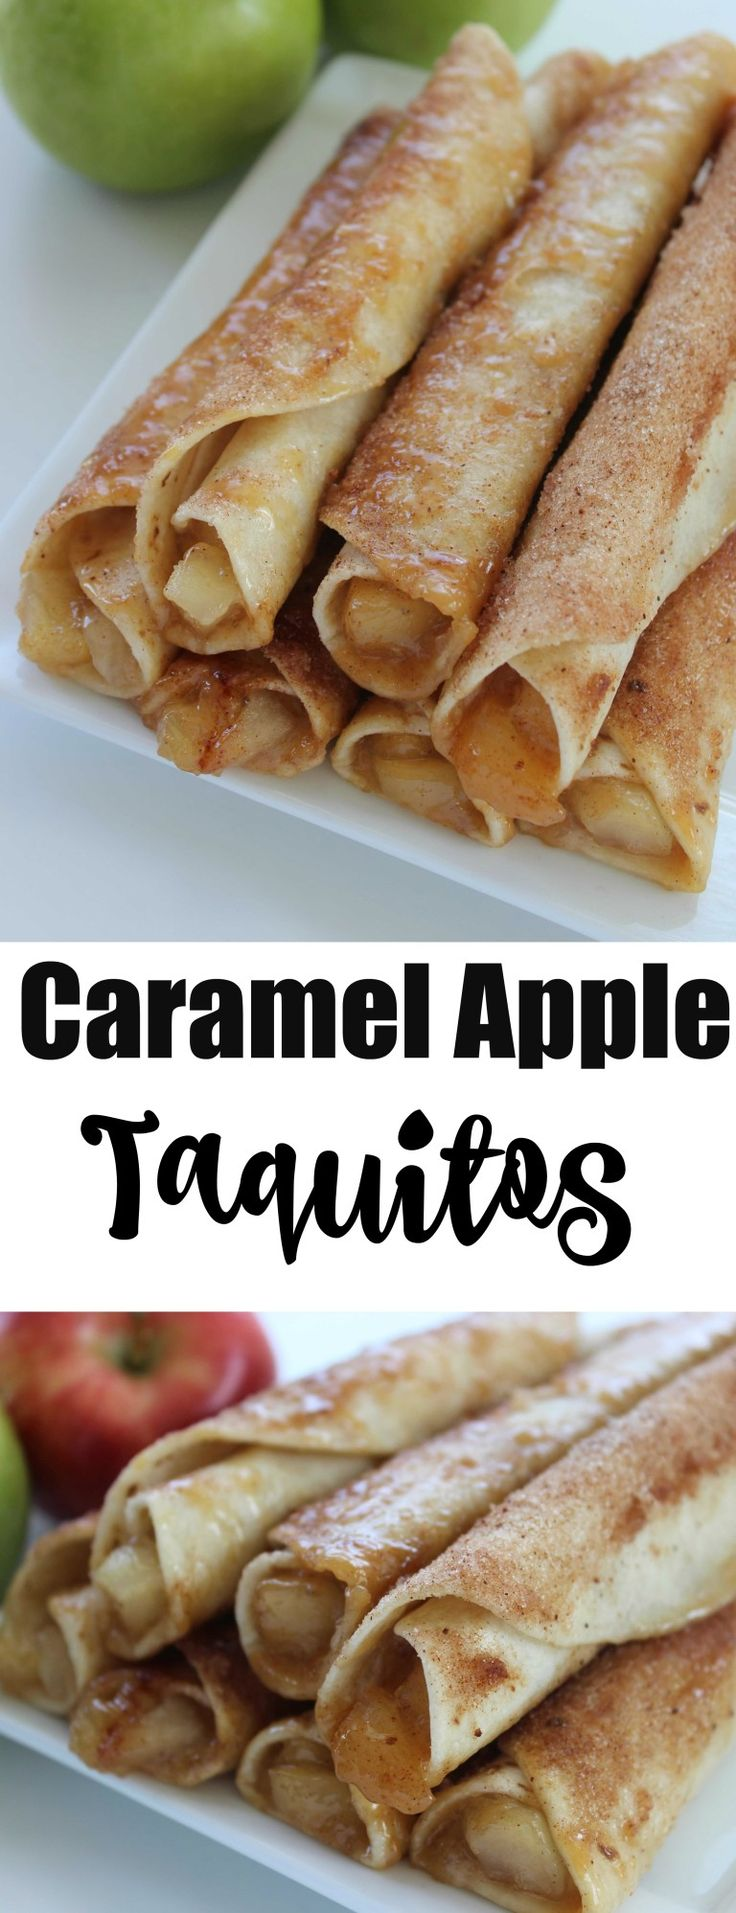 Caramel Apple Taquitos